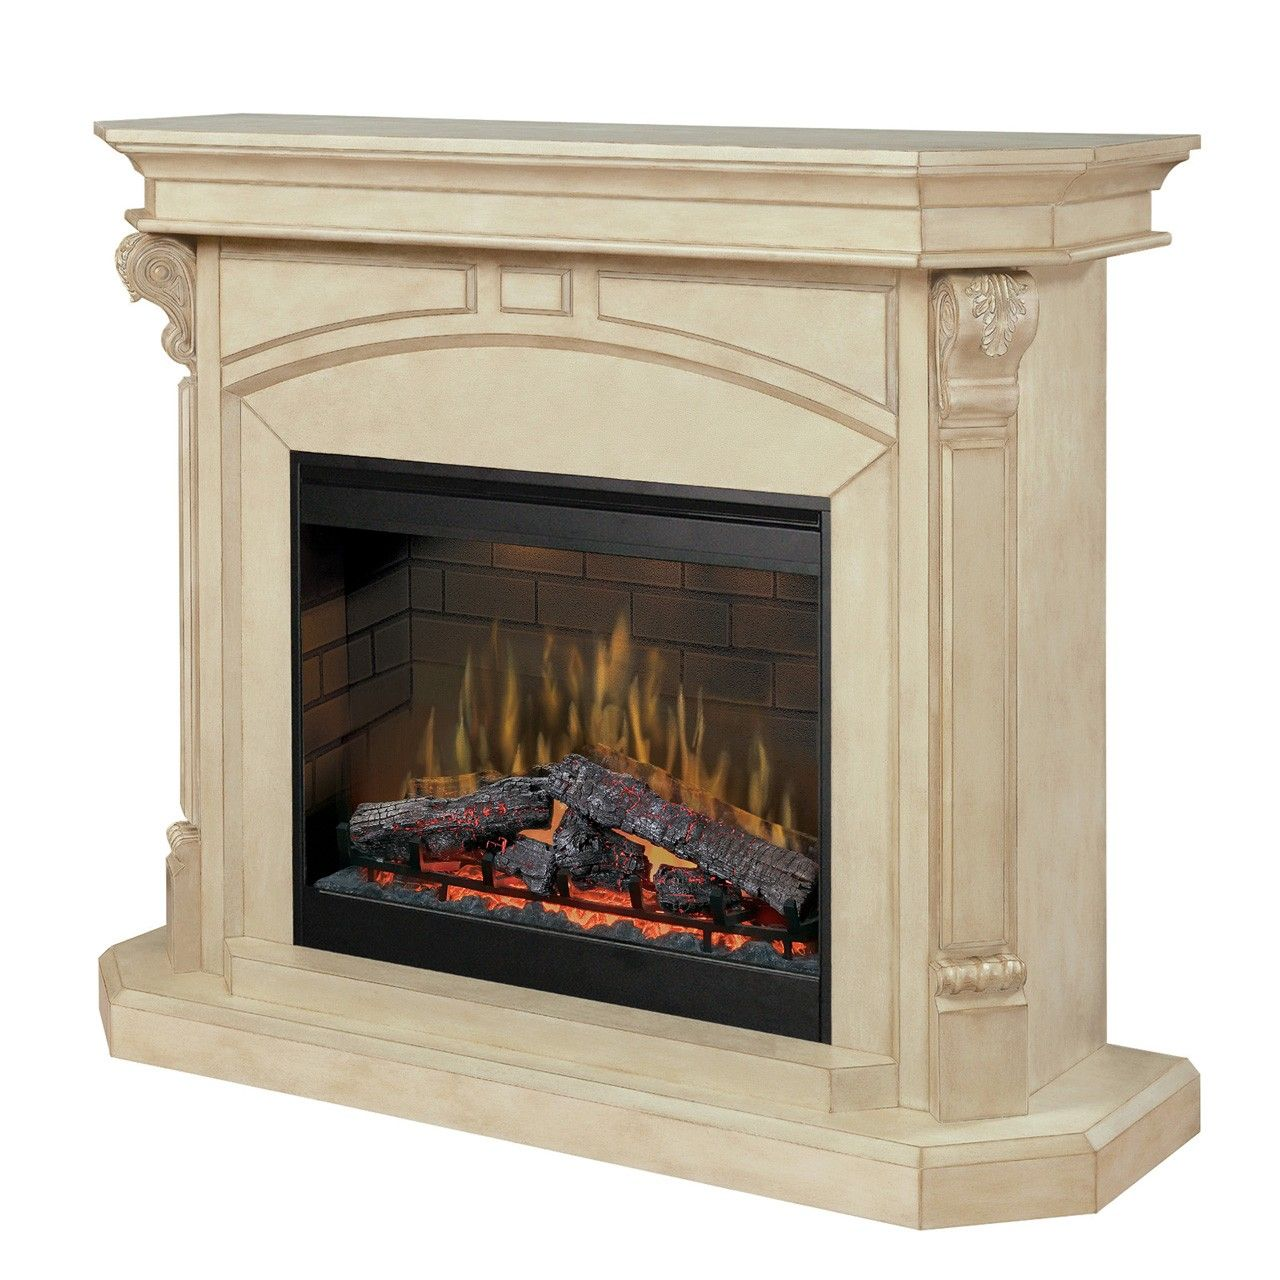 Dimplex Bromley Electric Fireplace Model # SOP-495-P Seigermans Furniture